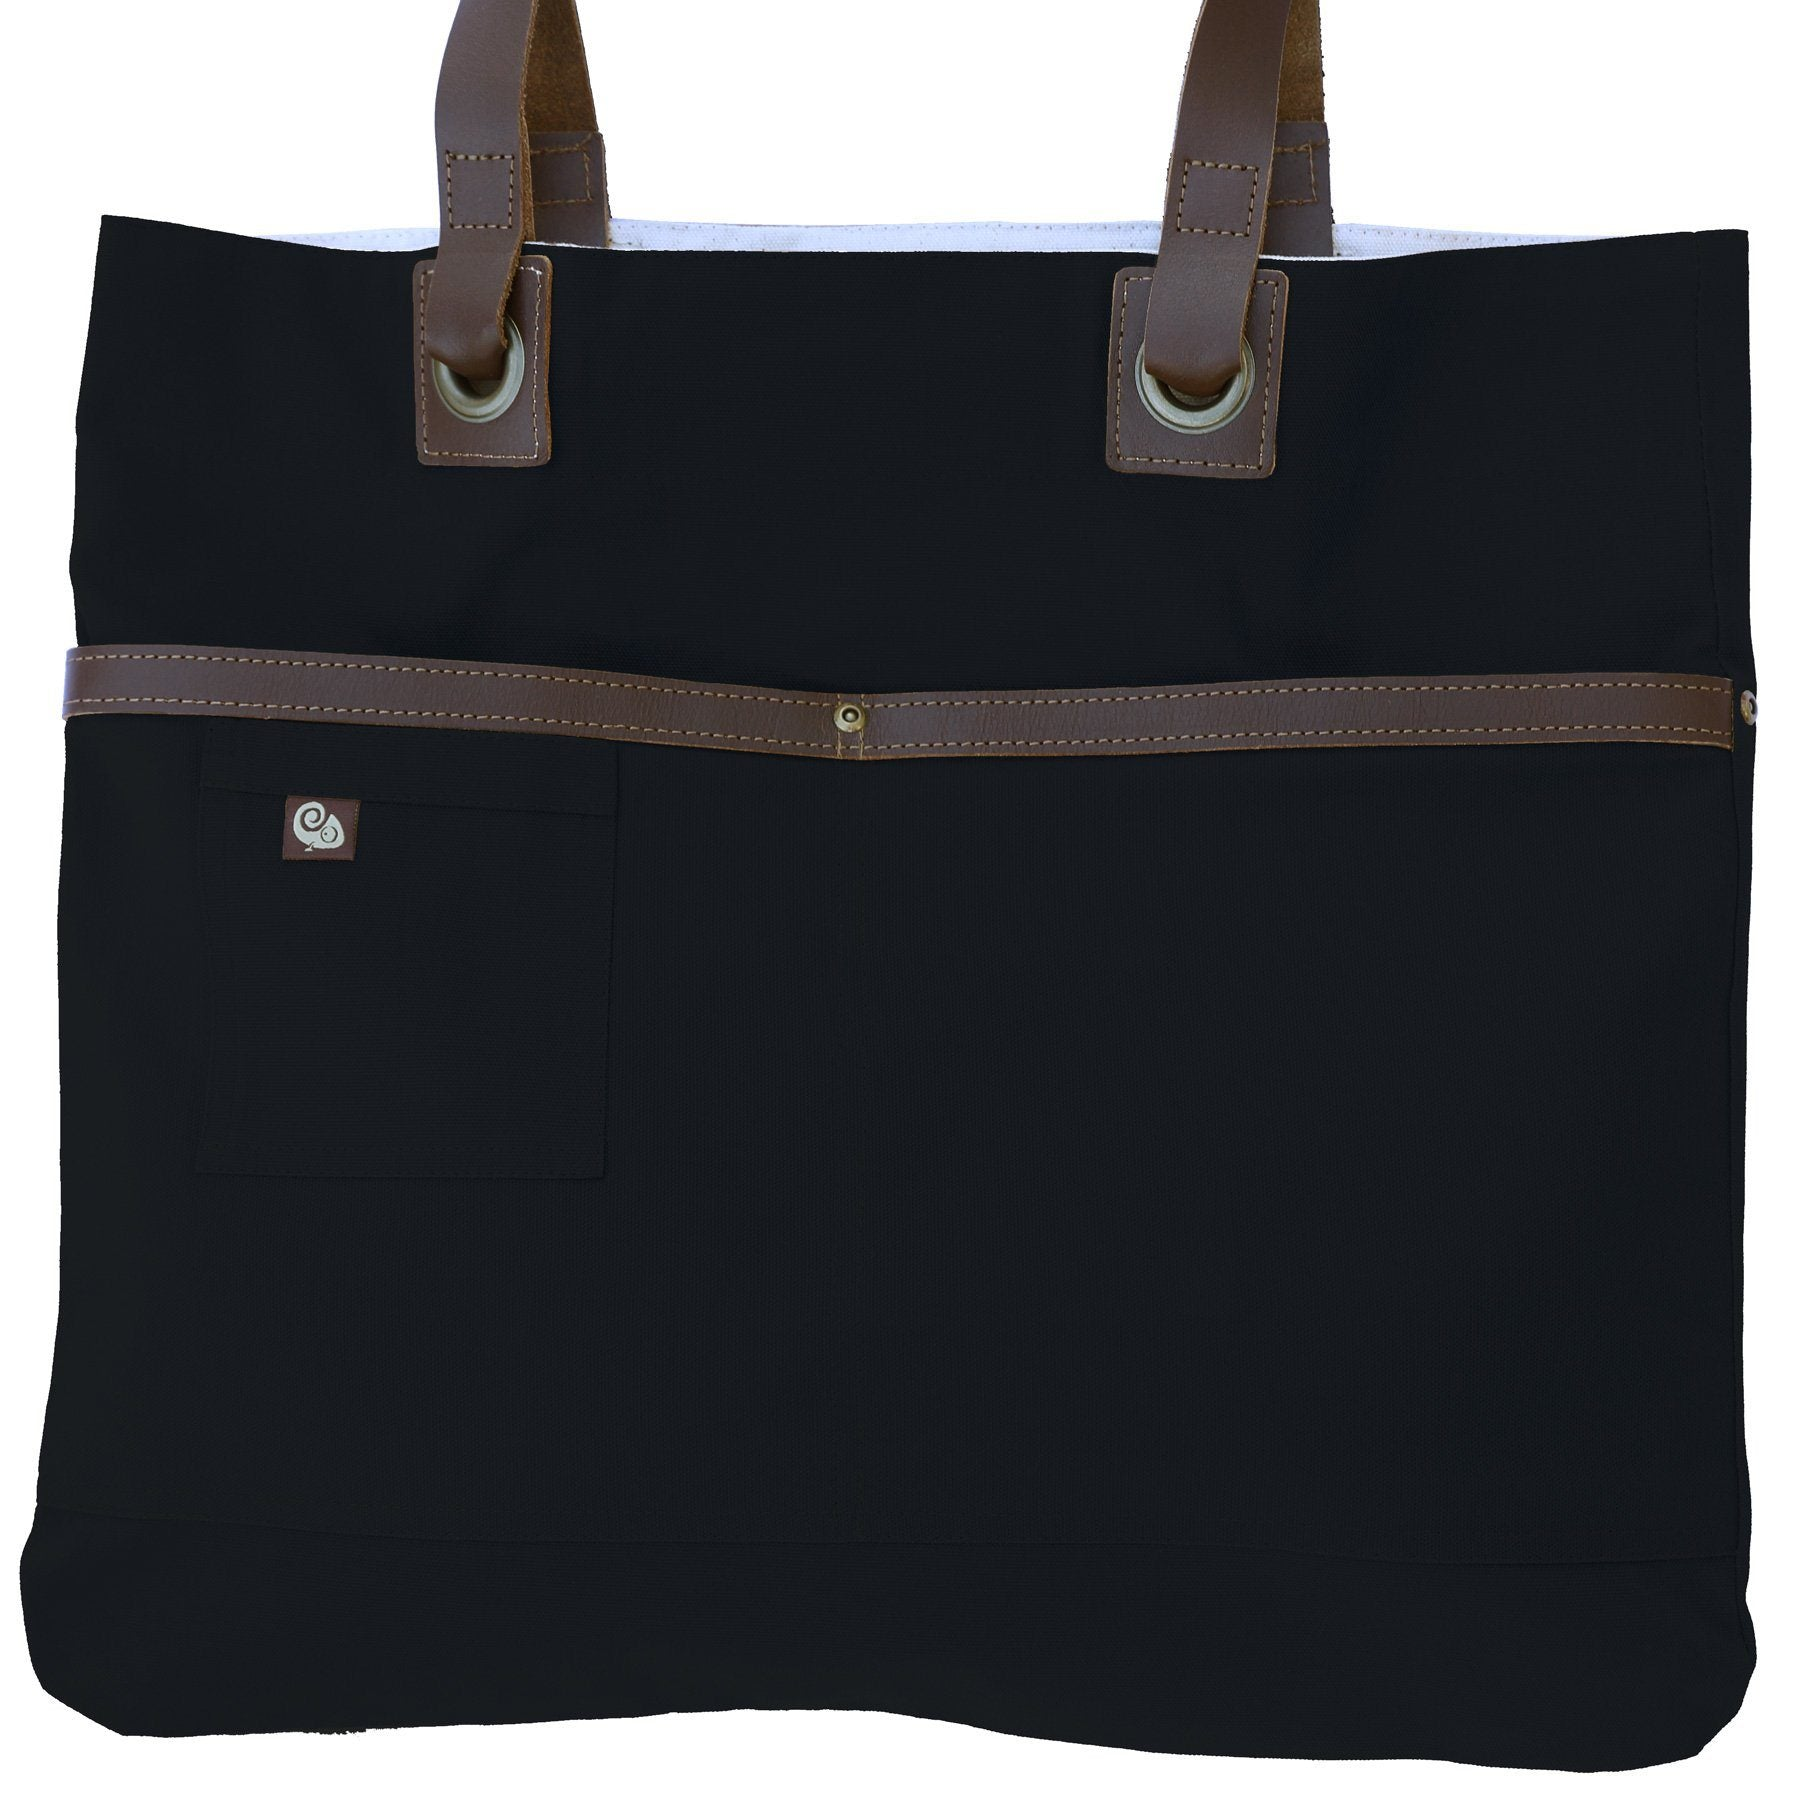 Koda Austell Canvas Bag (Black)